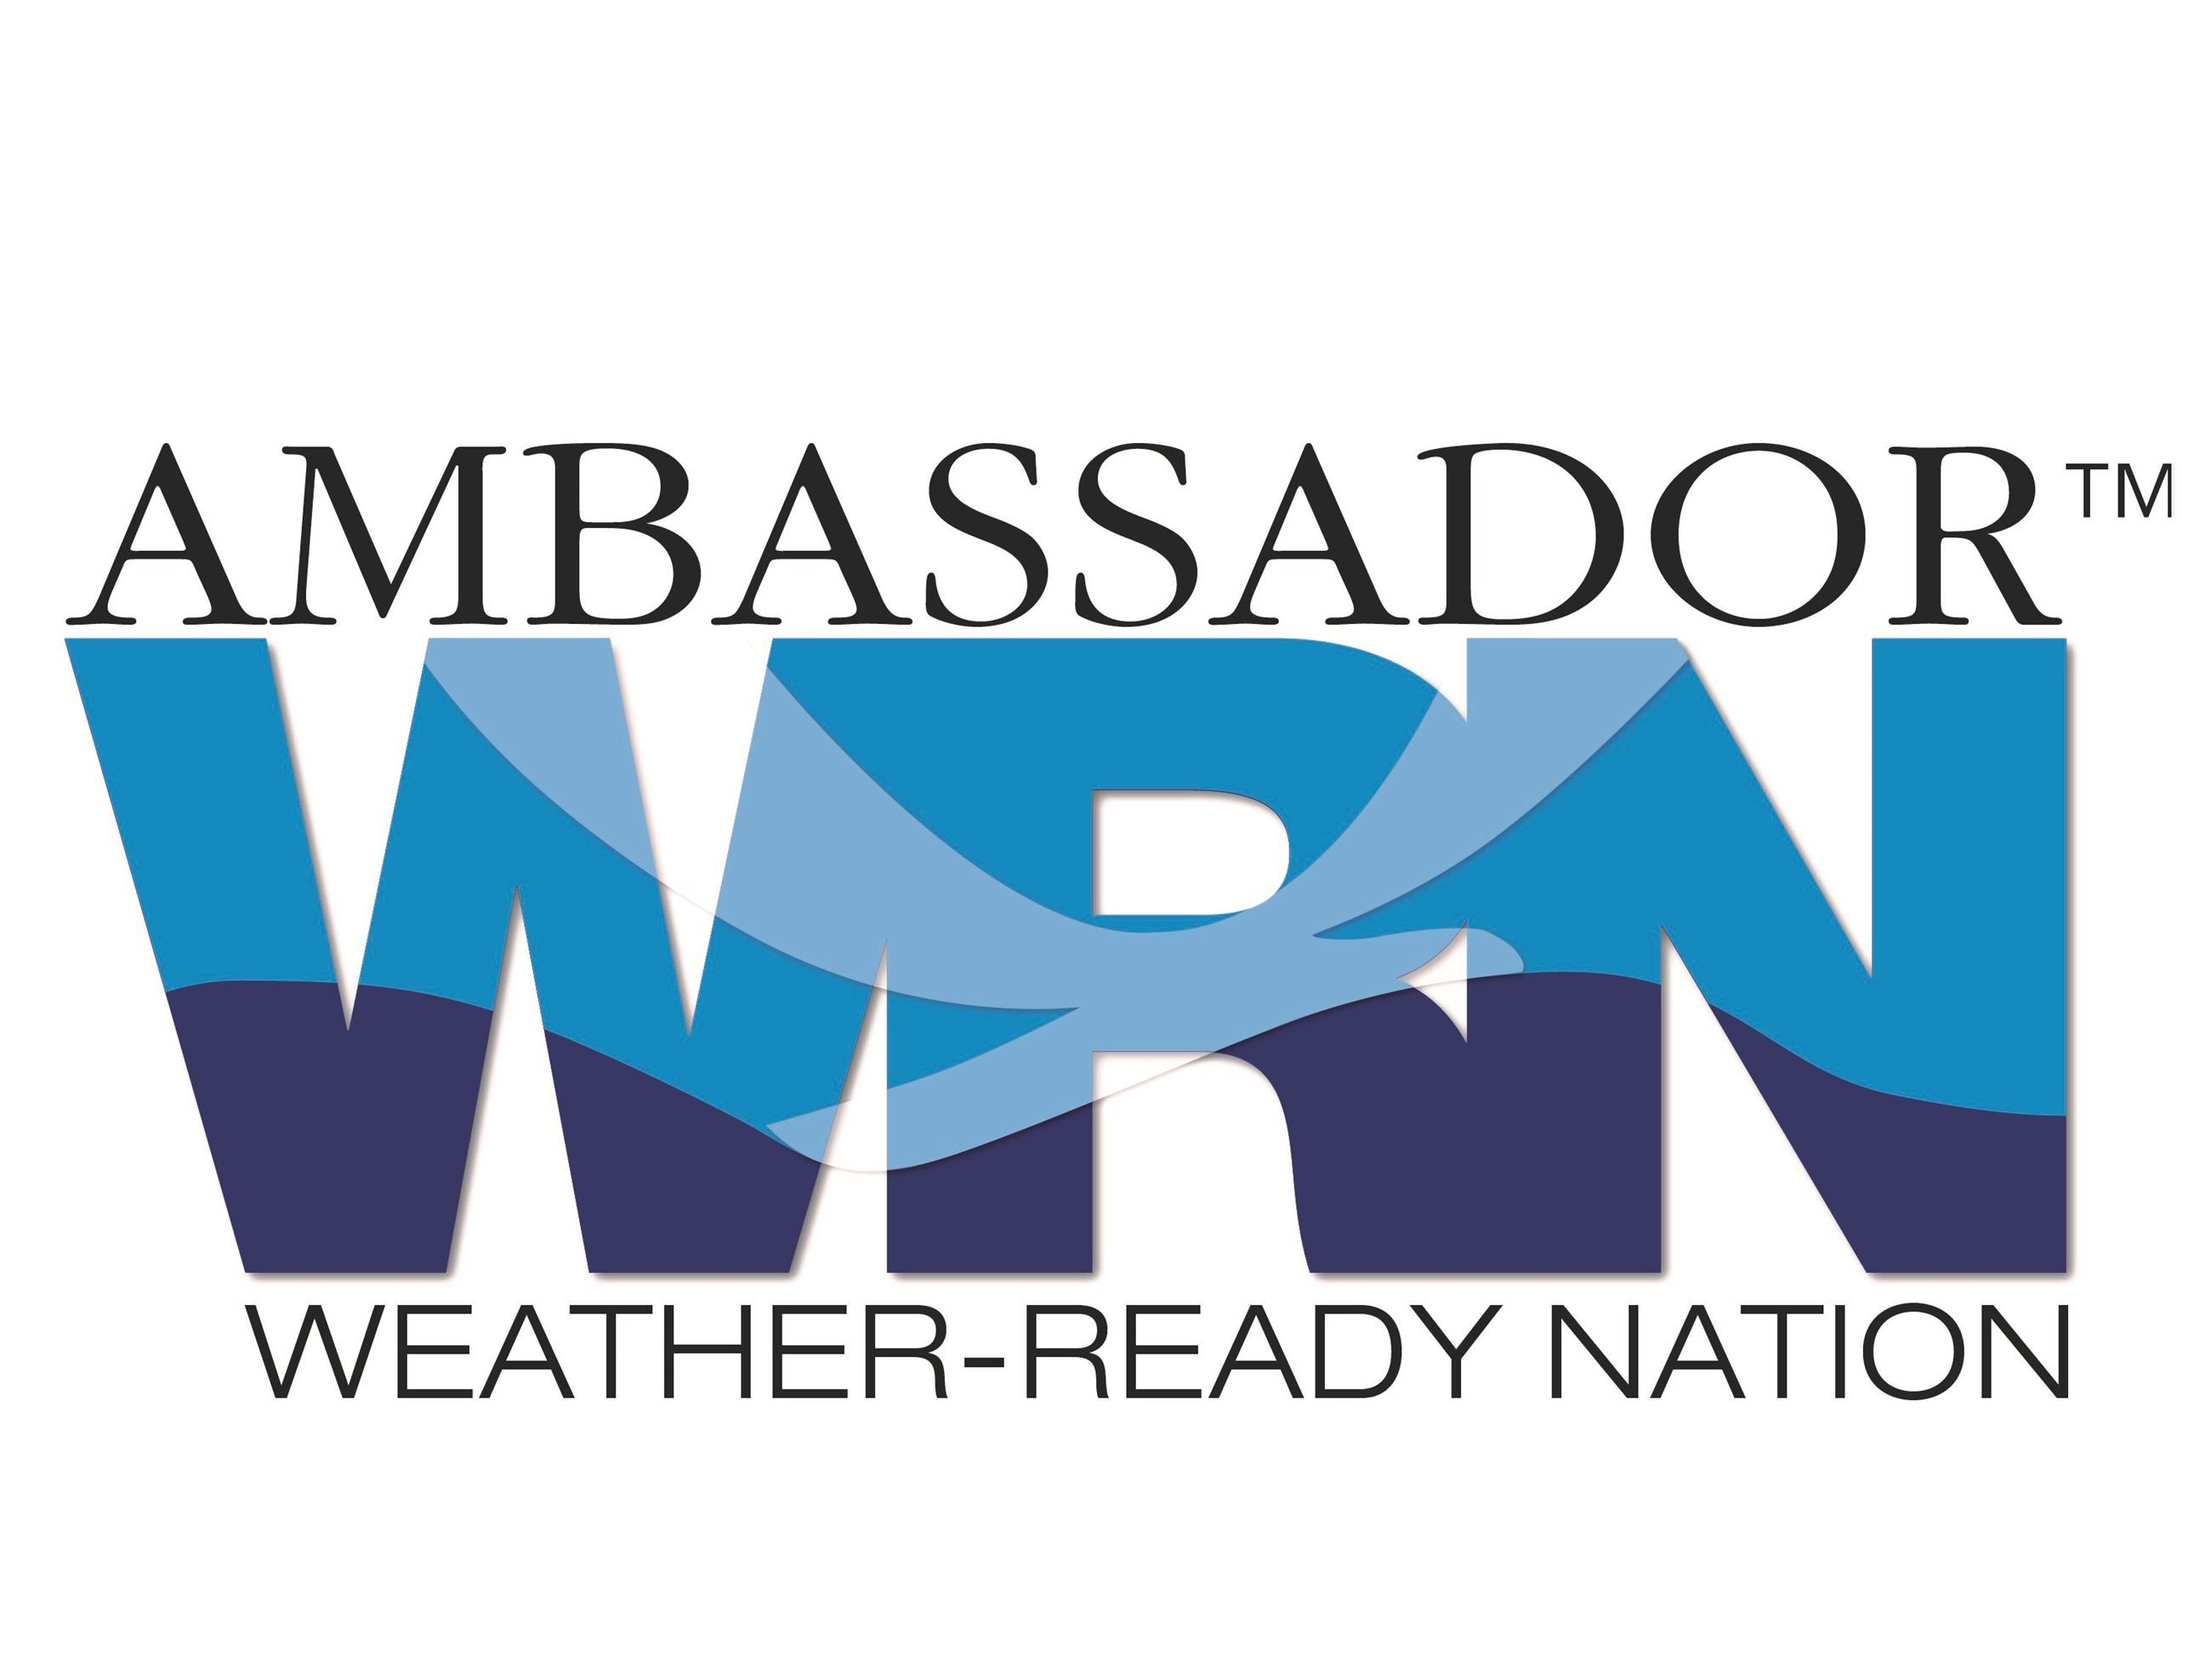 This is an image of the NOAA Weather-Ready Nation Ambassador logo.